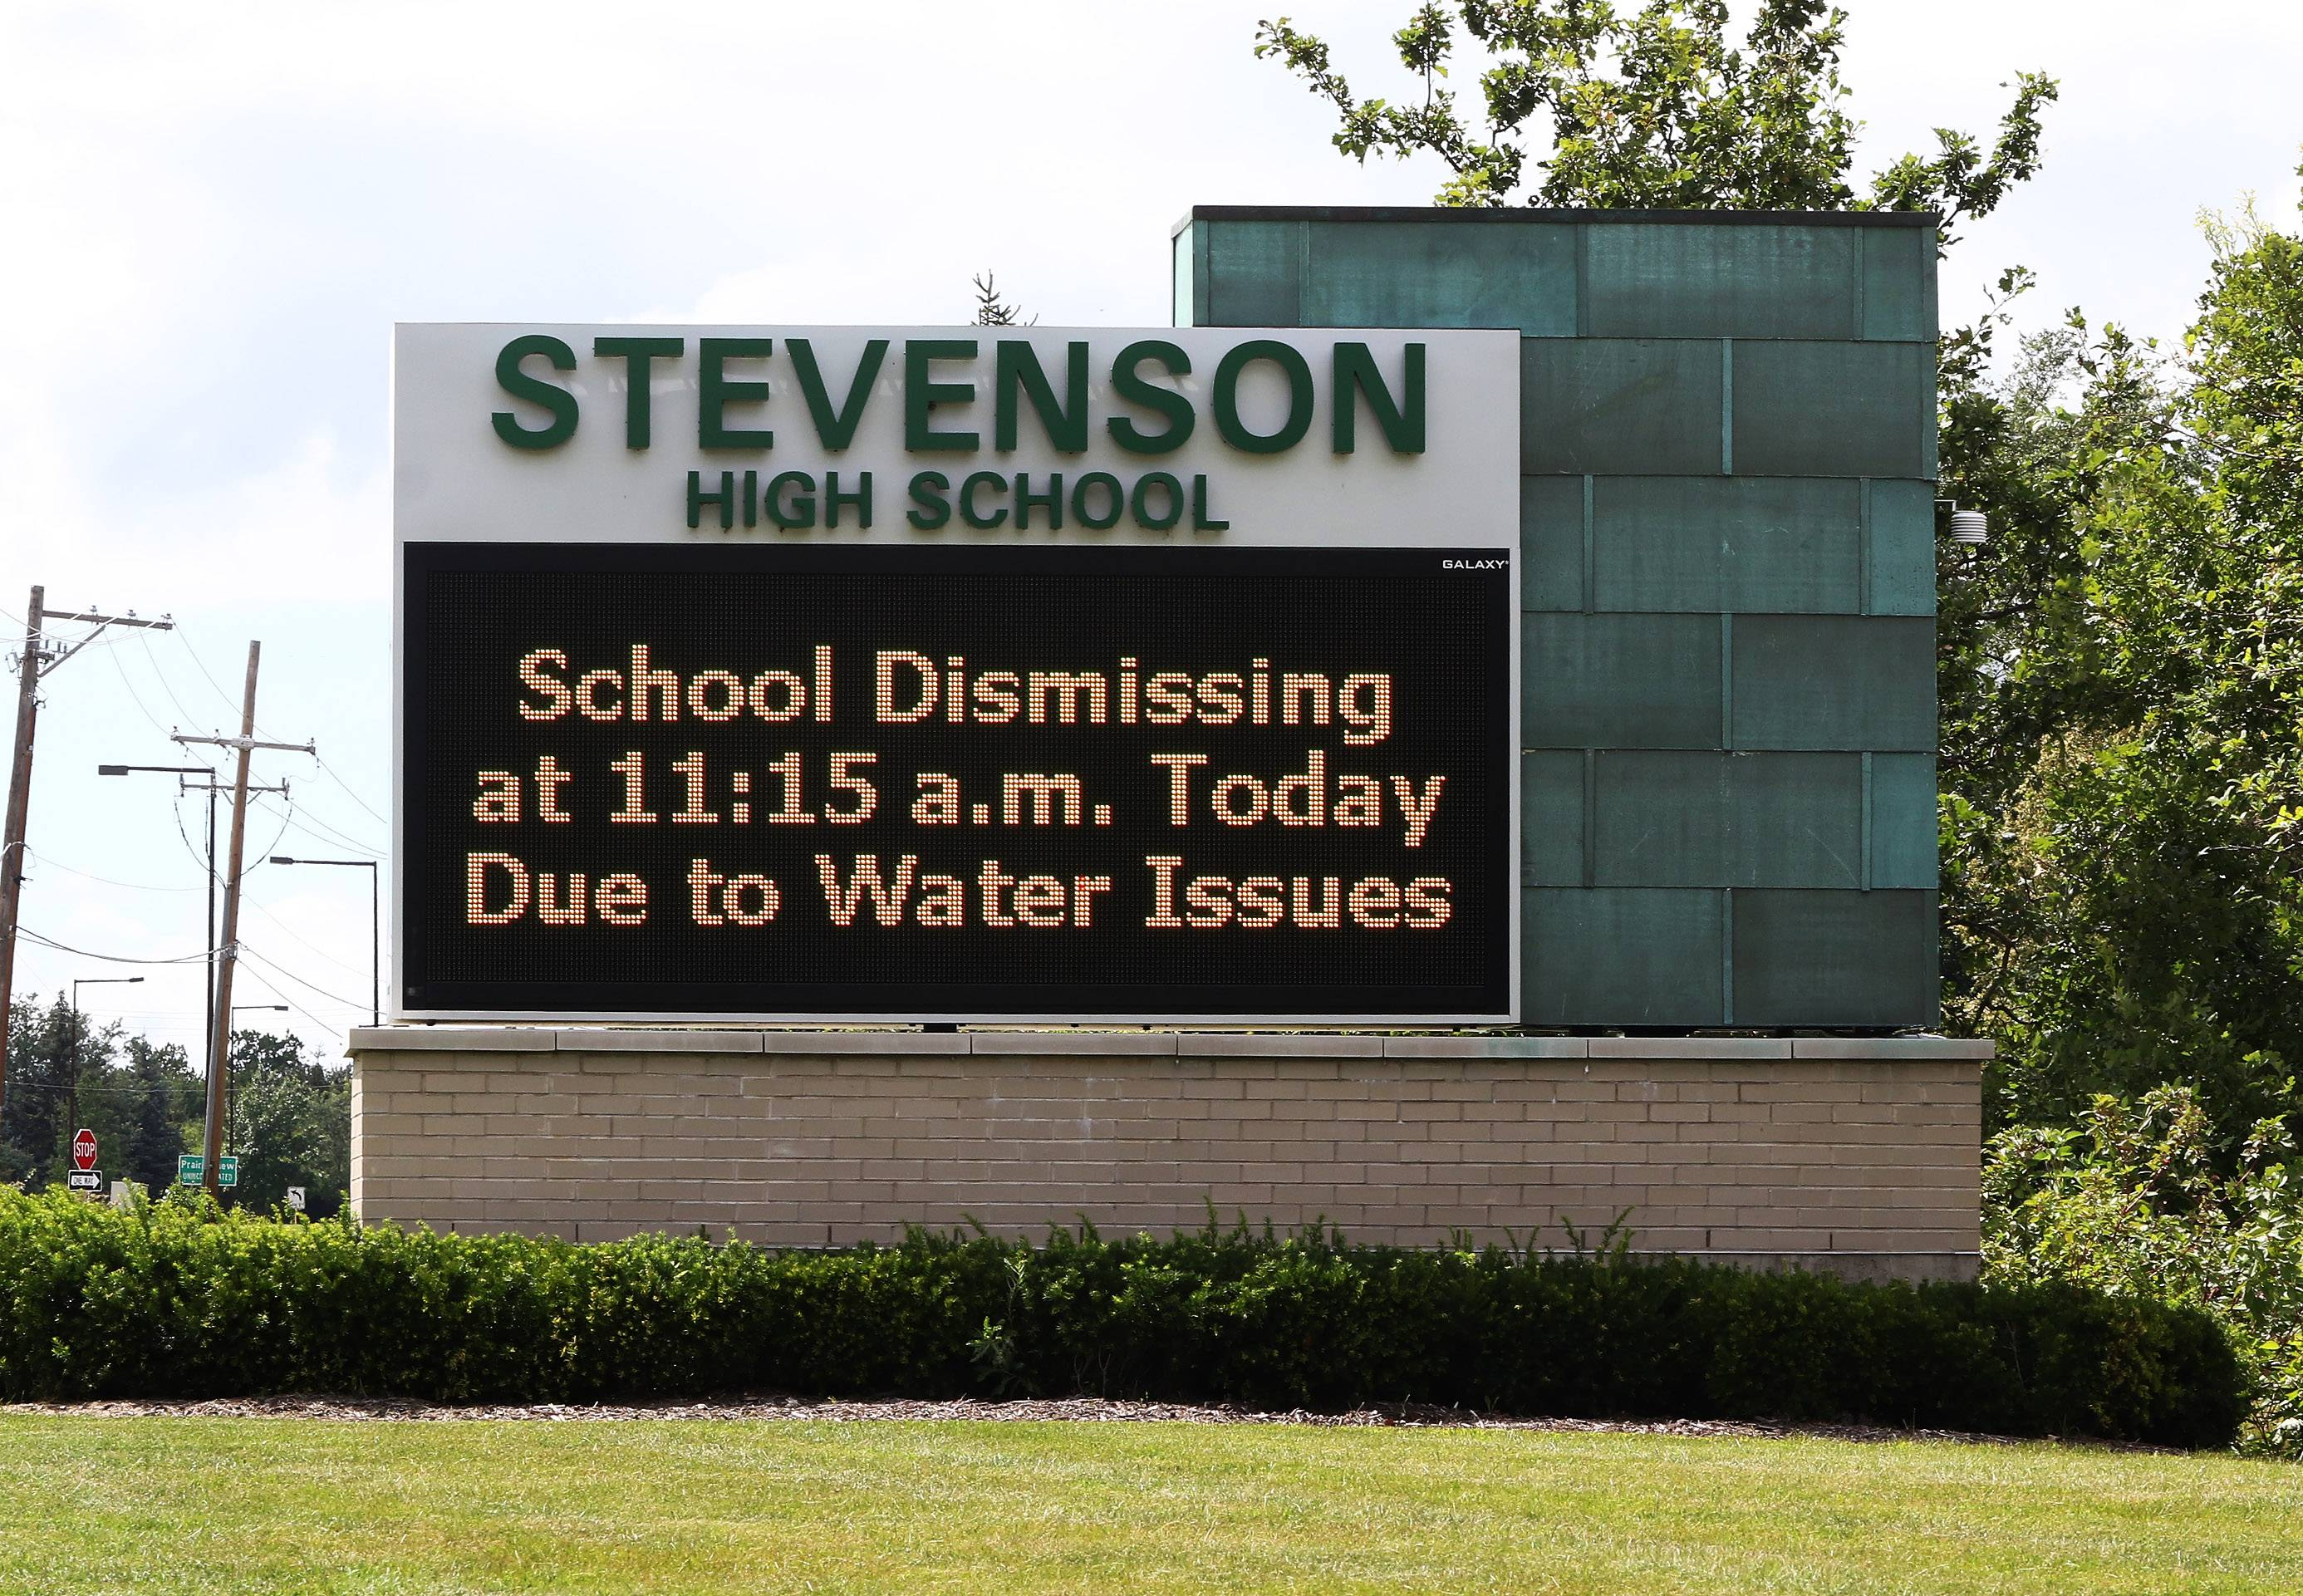 Stevenson High School sent students home early Thursday after a water main break near the Des Plaines River in Lincolnshire cut off water pressure. Classes will resume as scheduled Friday, officials say.